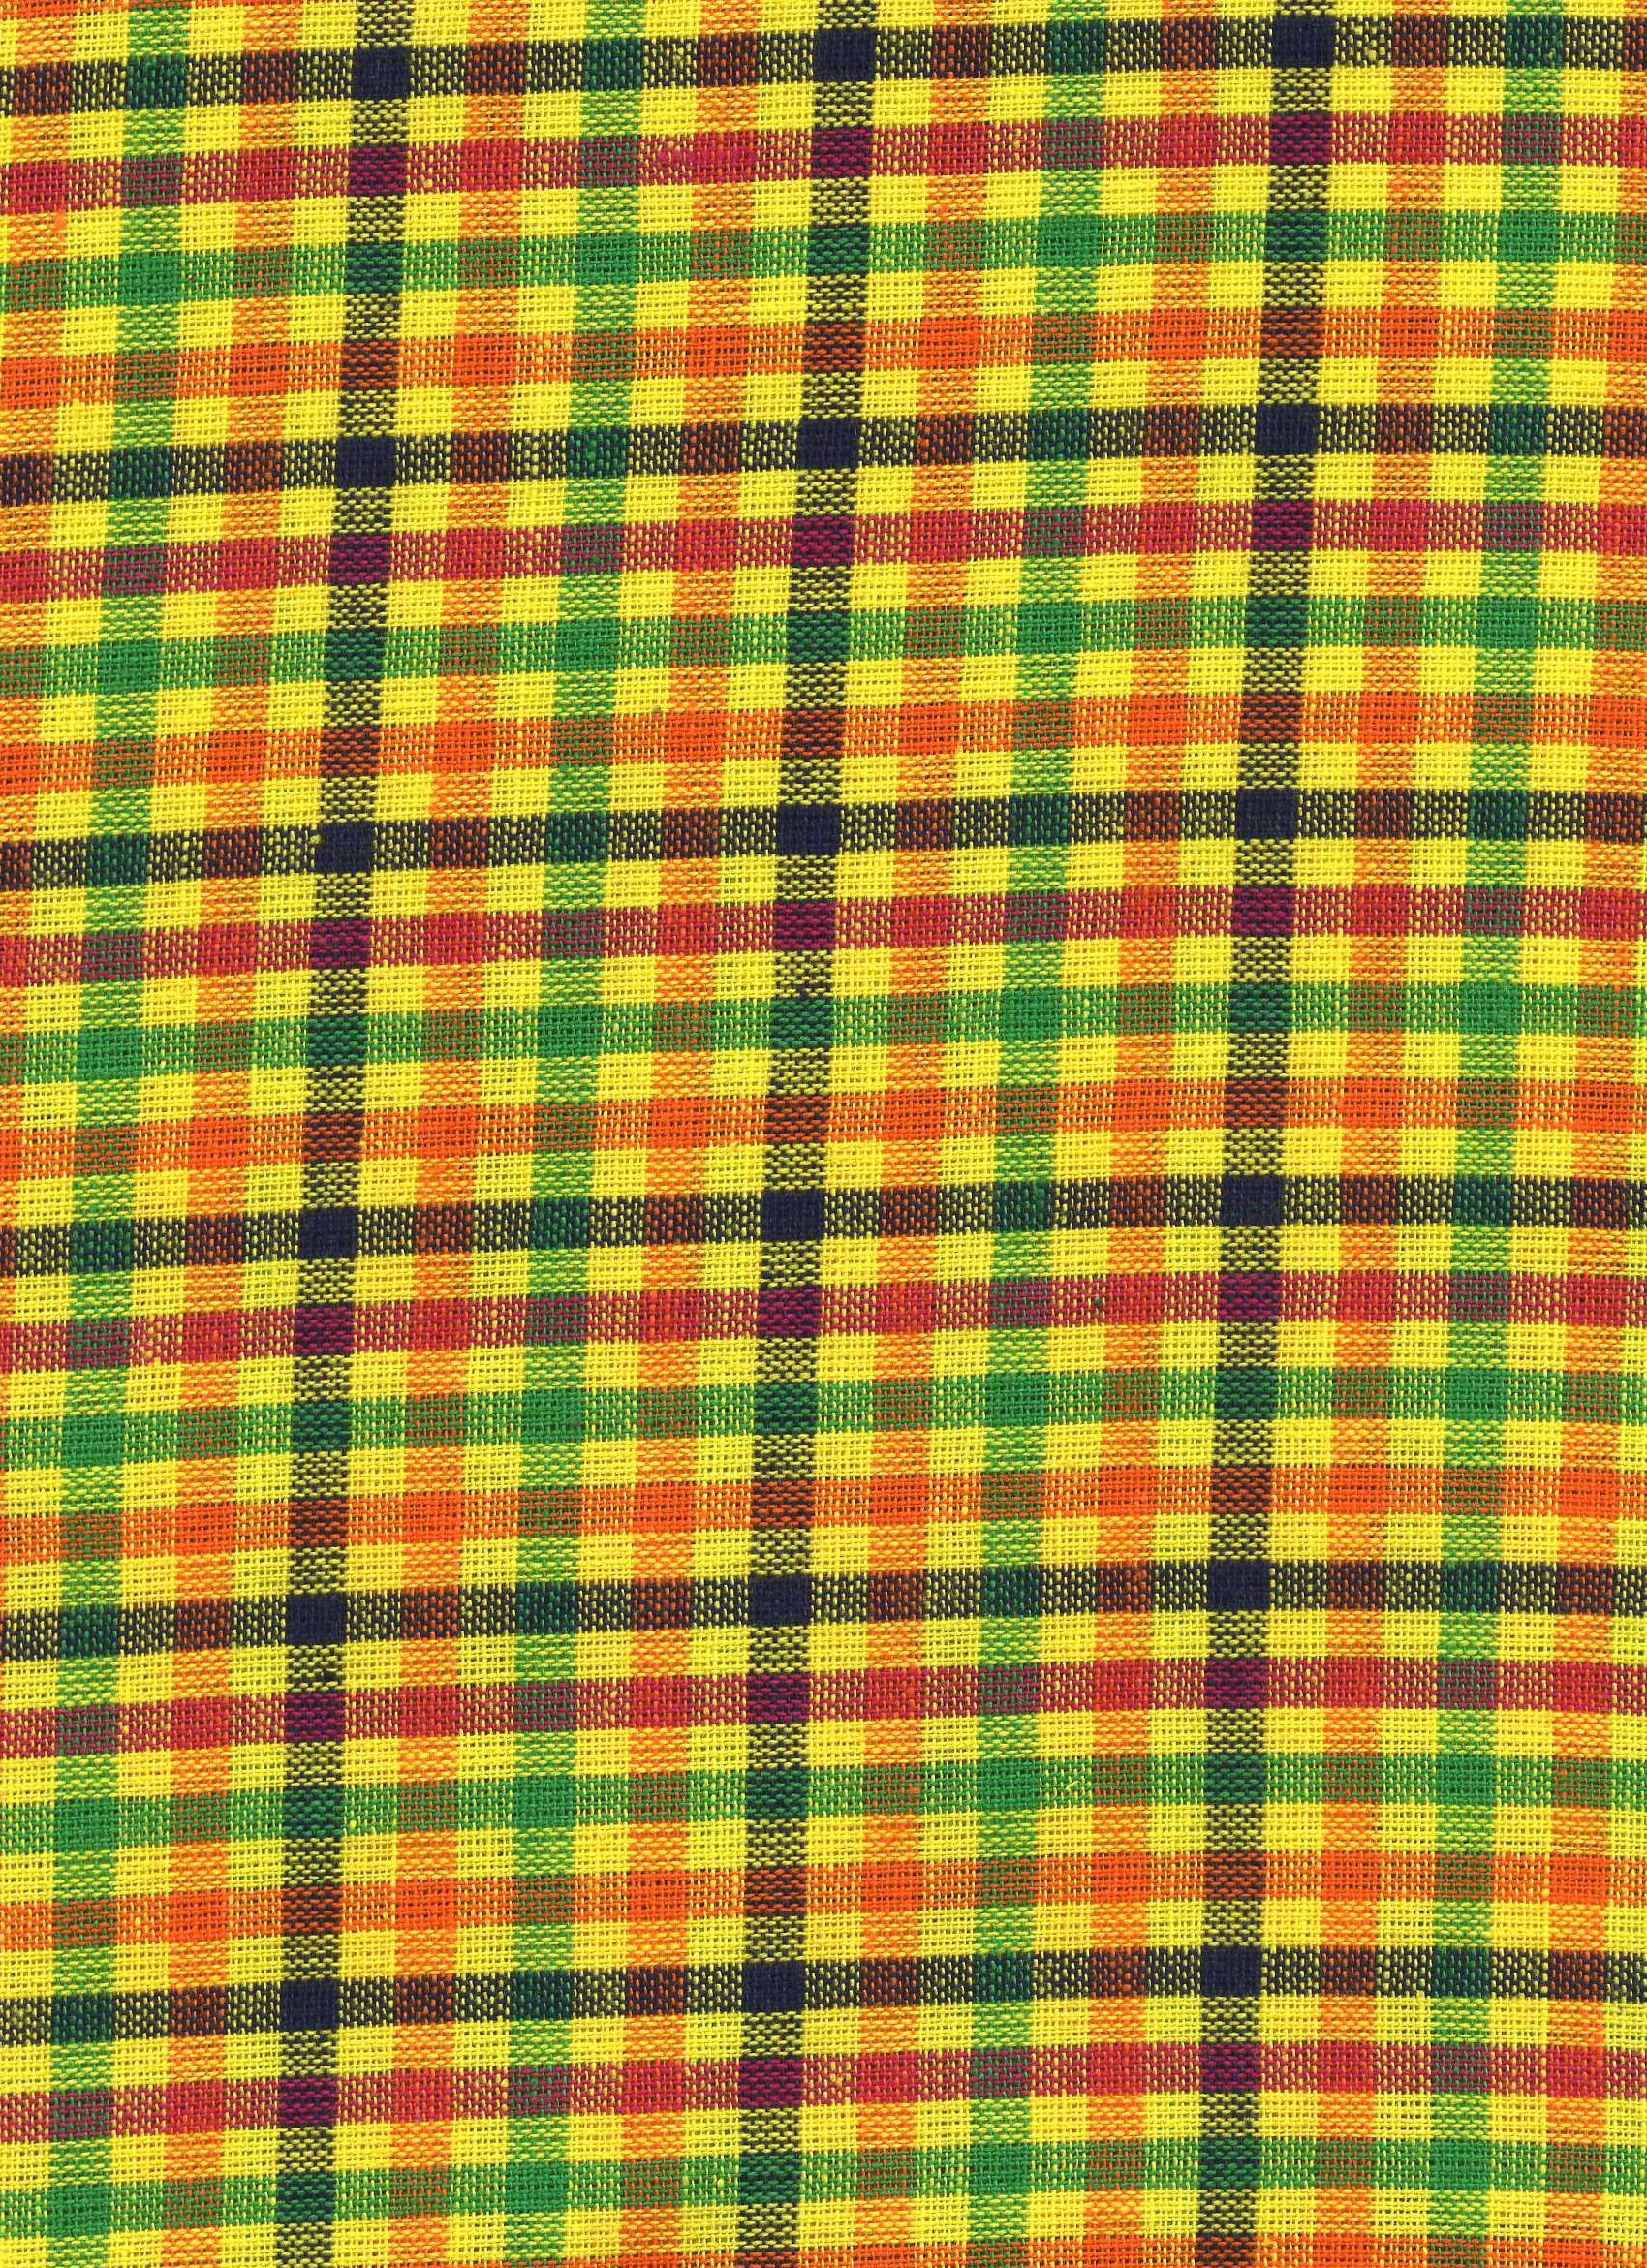 Yellow/Green/Orange and Black Plaid